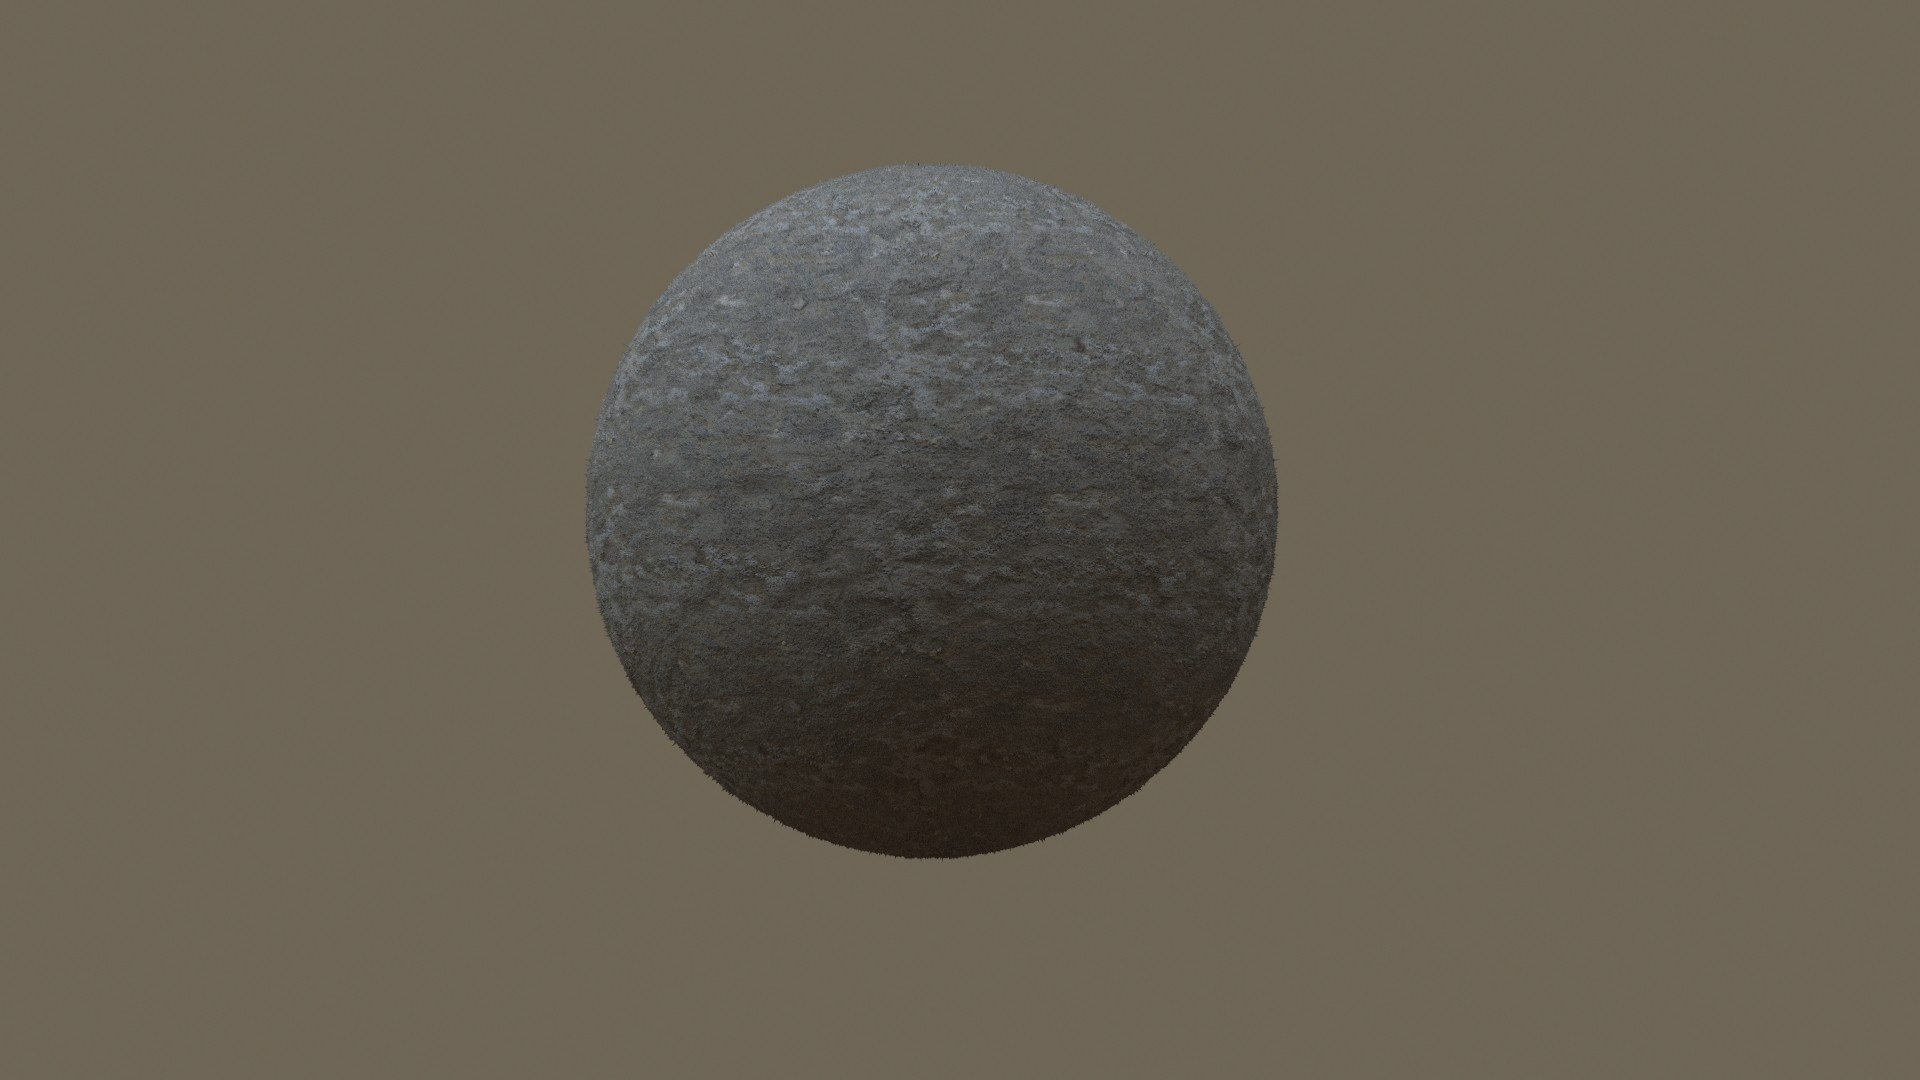 Klaas van egdom sphere surface